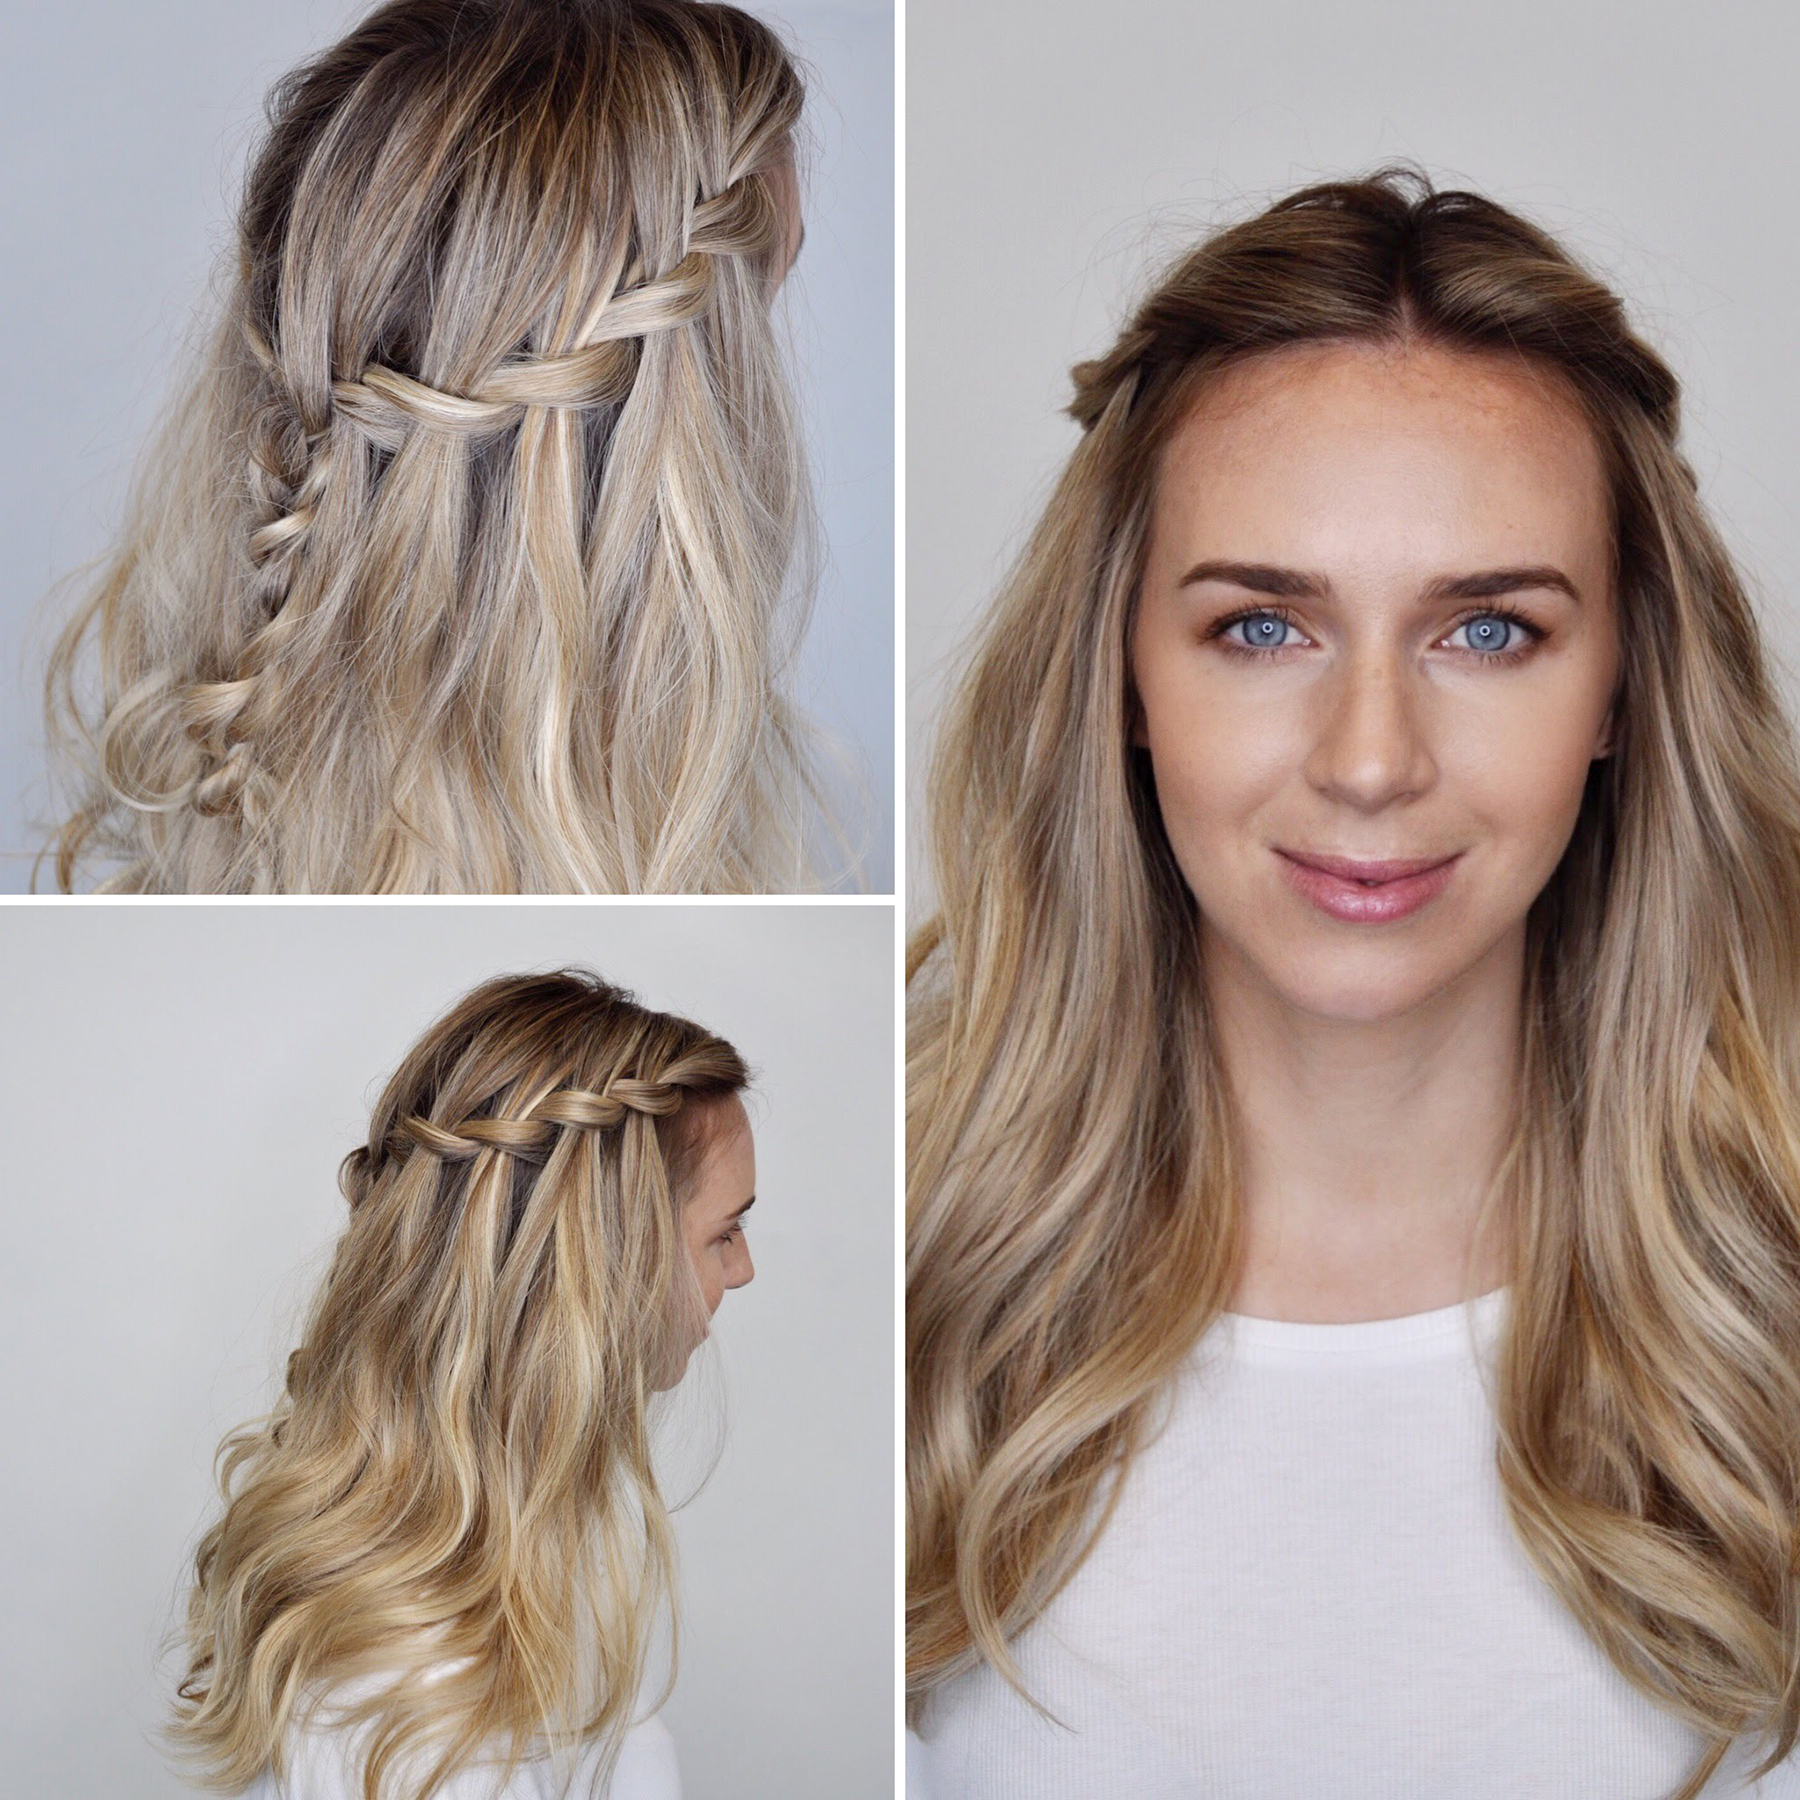 Real Simple Within Most Popular Long Hairstyles With Multiple Braids (View 18 of 20)